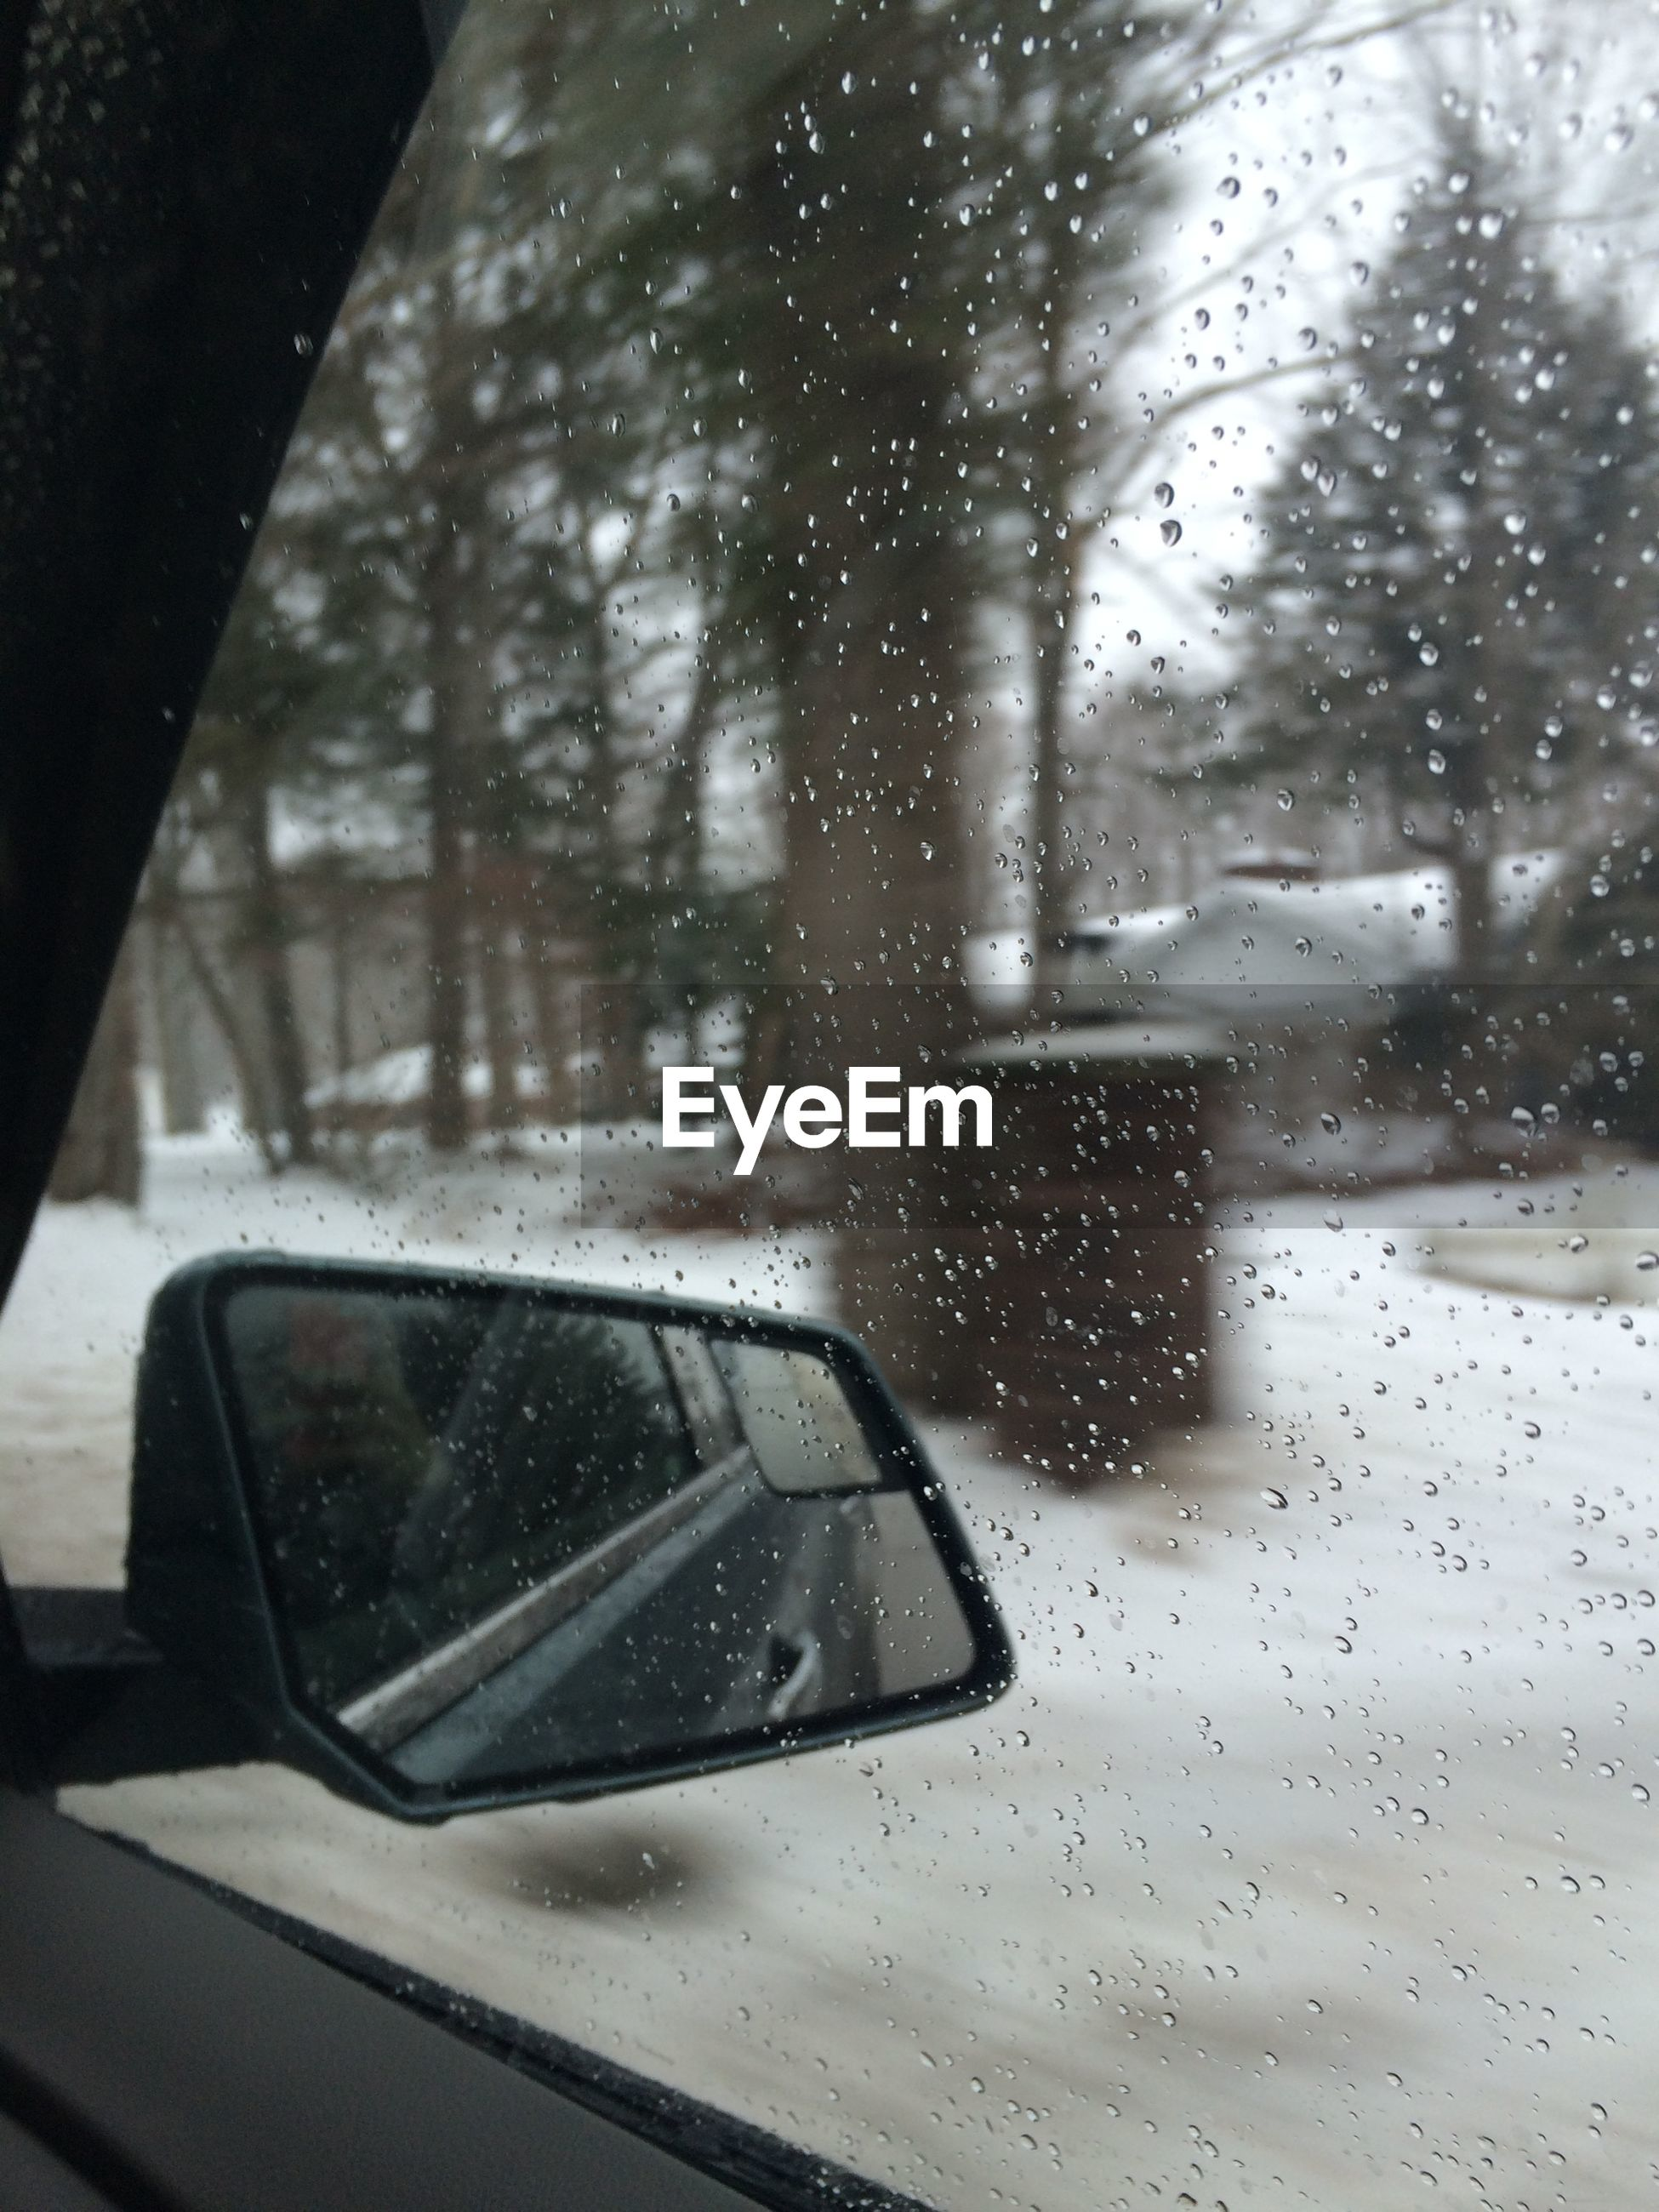 Close-up of side-view mirror seen through wet window